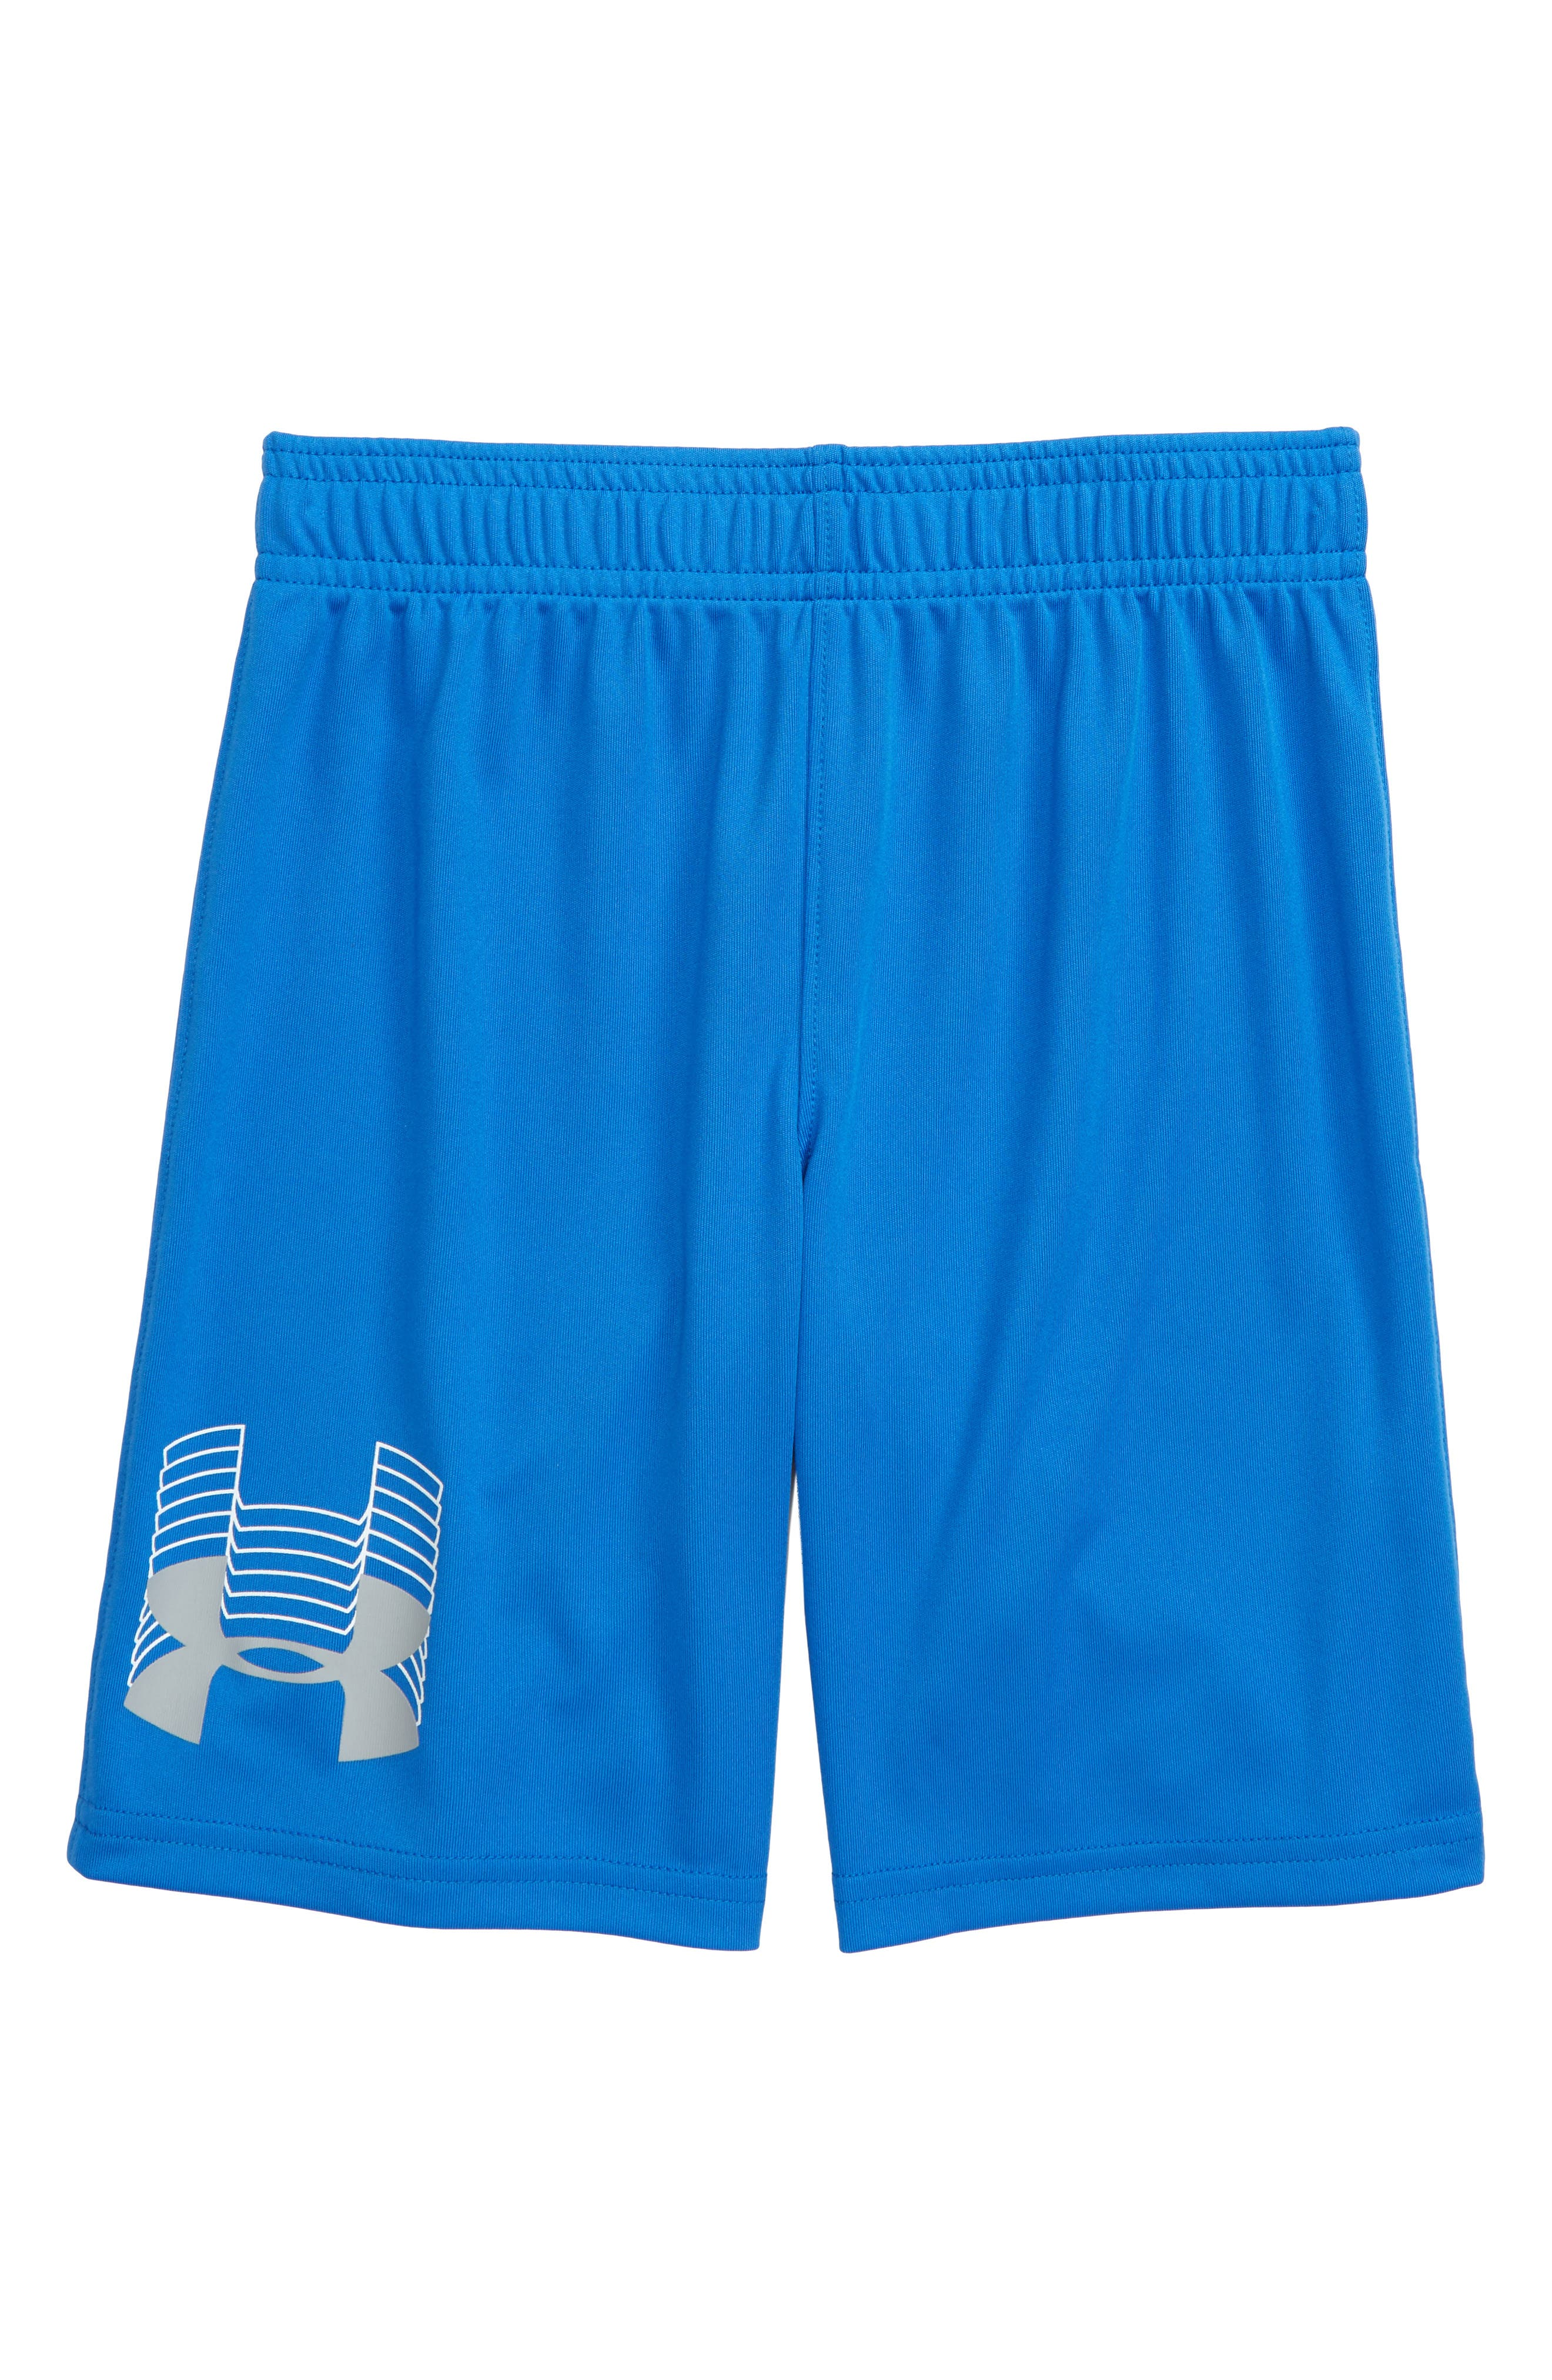 Toddler Boys Under Armour Prototype Heatgear Shorts Size 4T  Blue